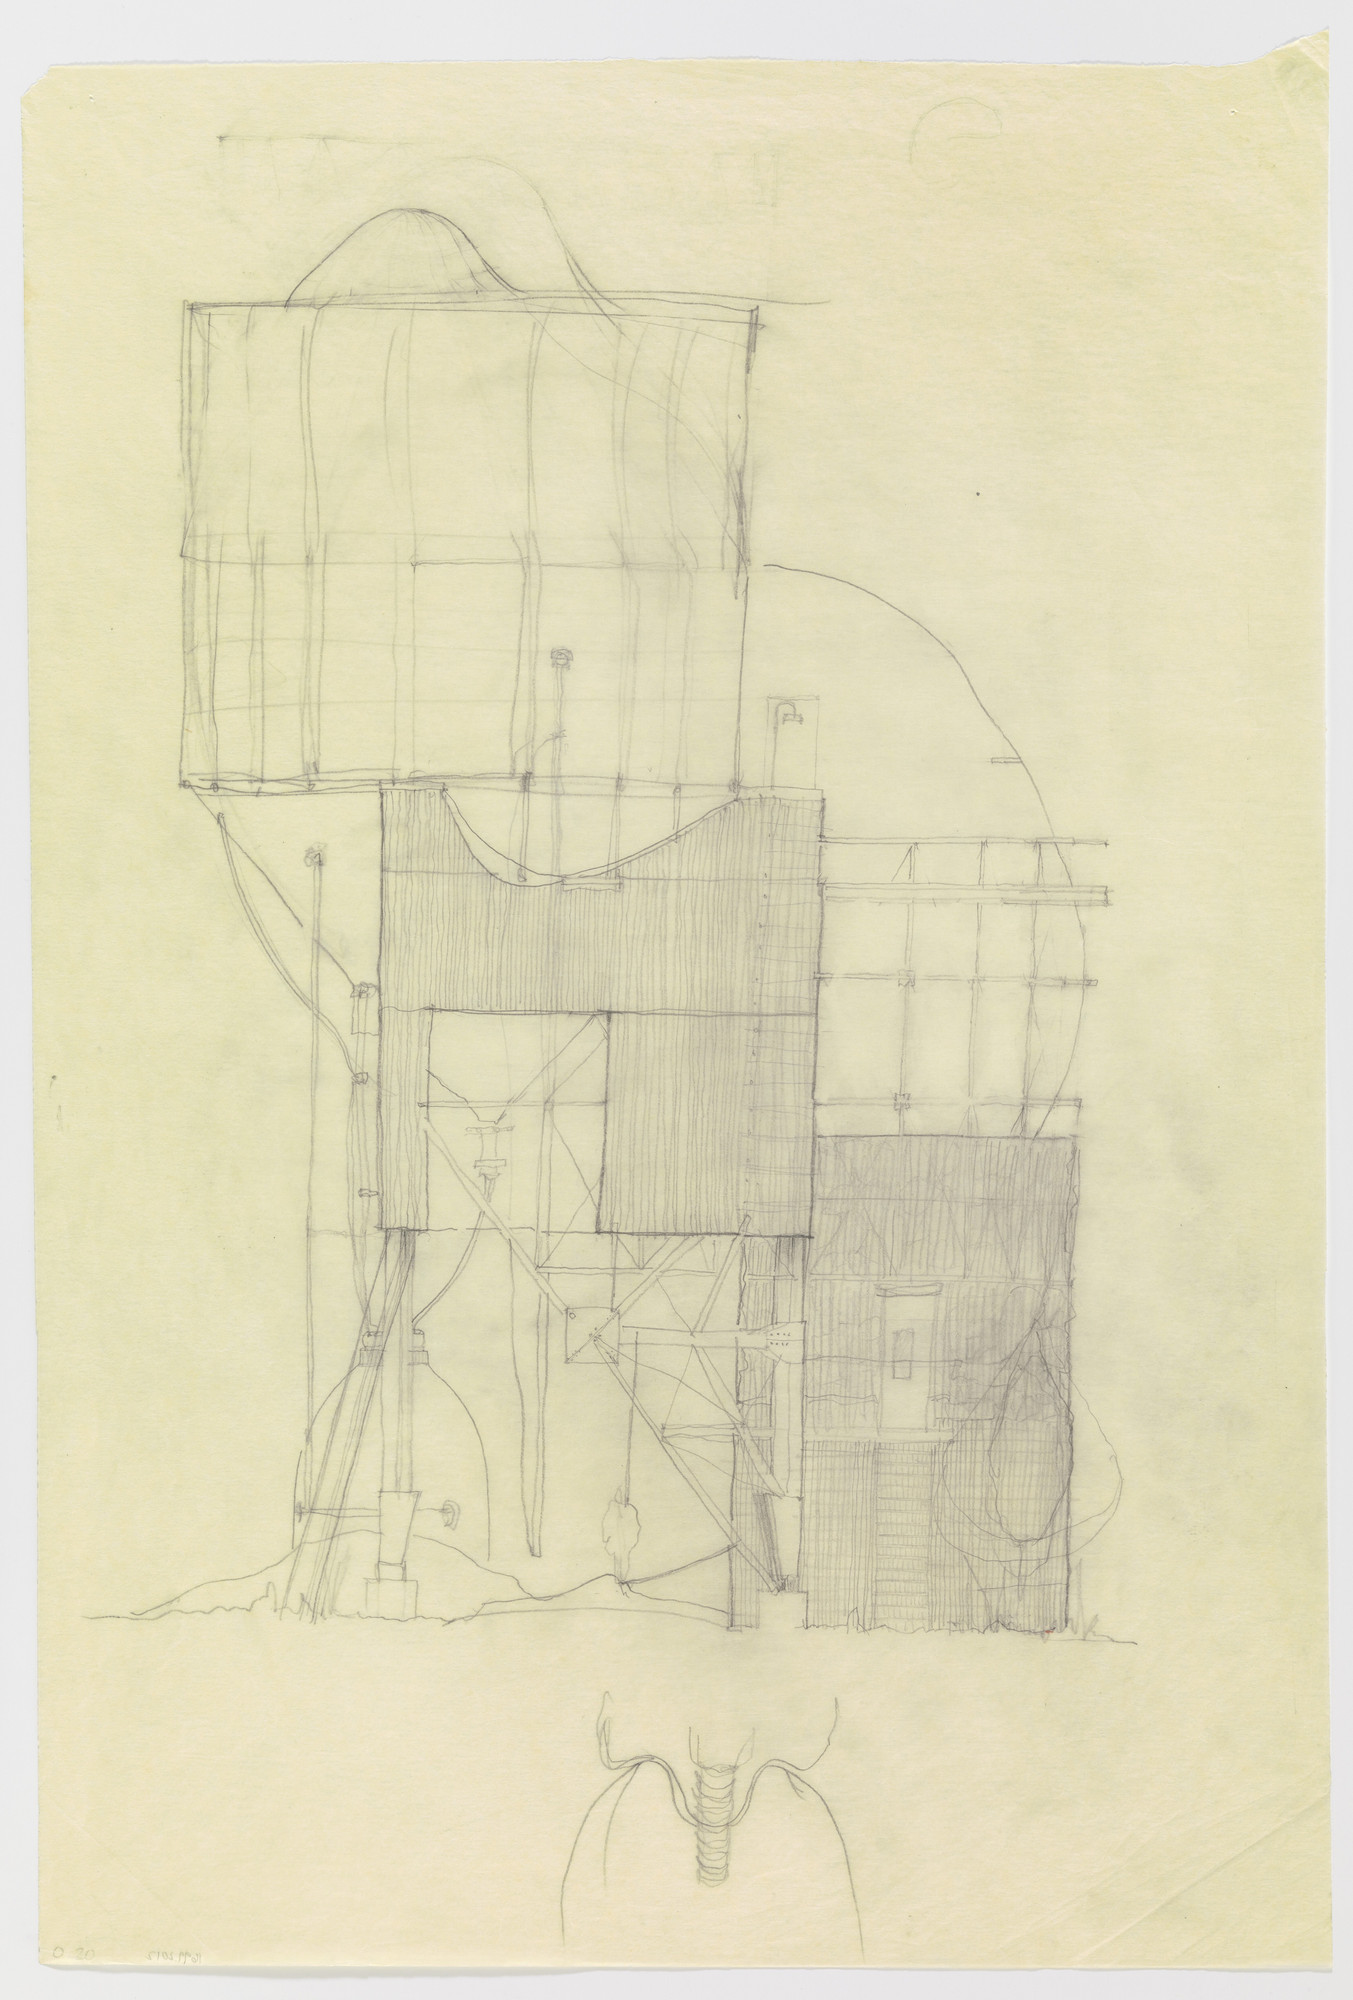 Douglas Darden. Oxygen House Project (Section). 1988